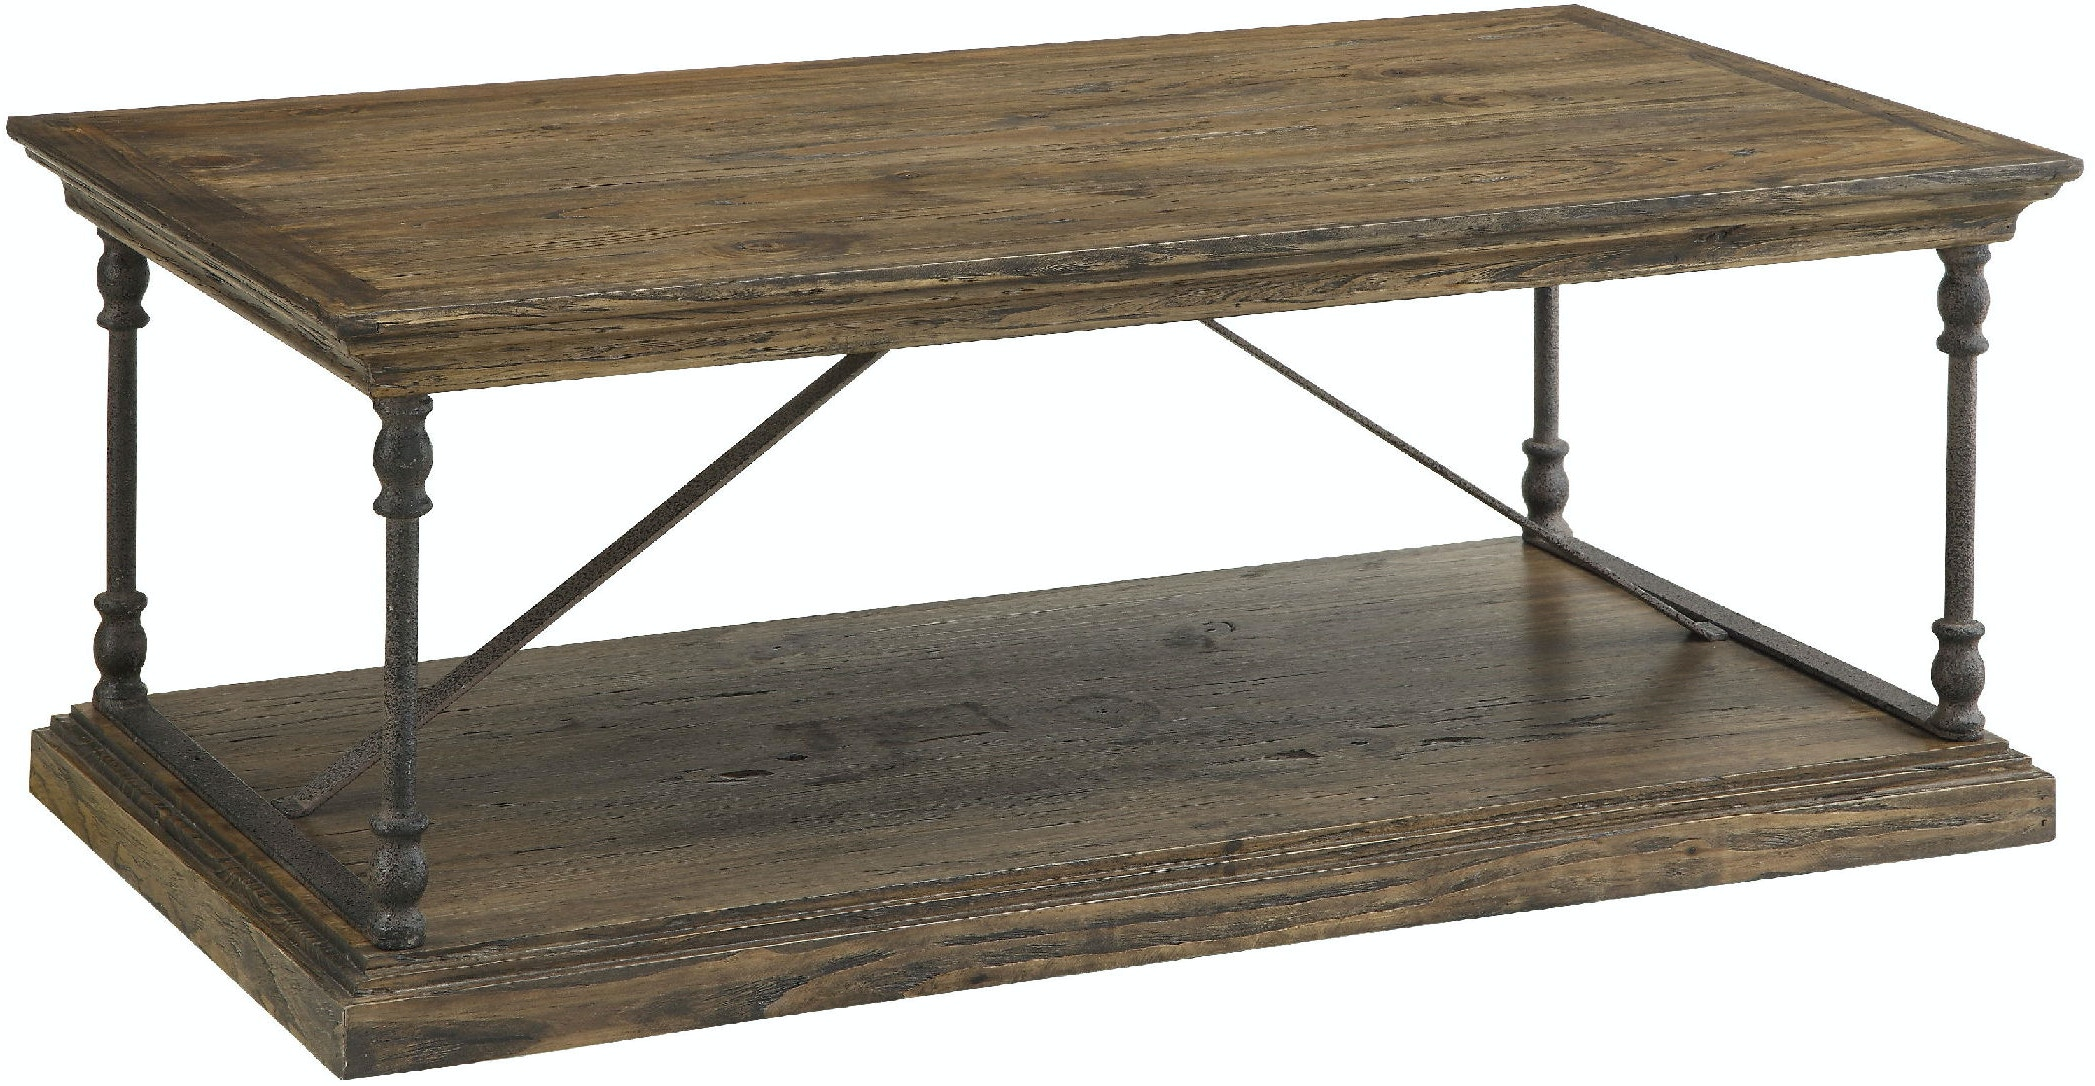 Coast to Coast Accents Living Room Cocktail Table : 61621 1  from www.bobmillsfurniture.com size 768 x 576 jpeg 35kB